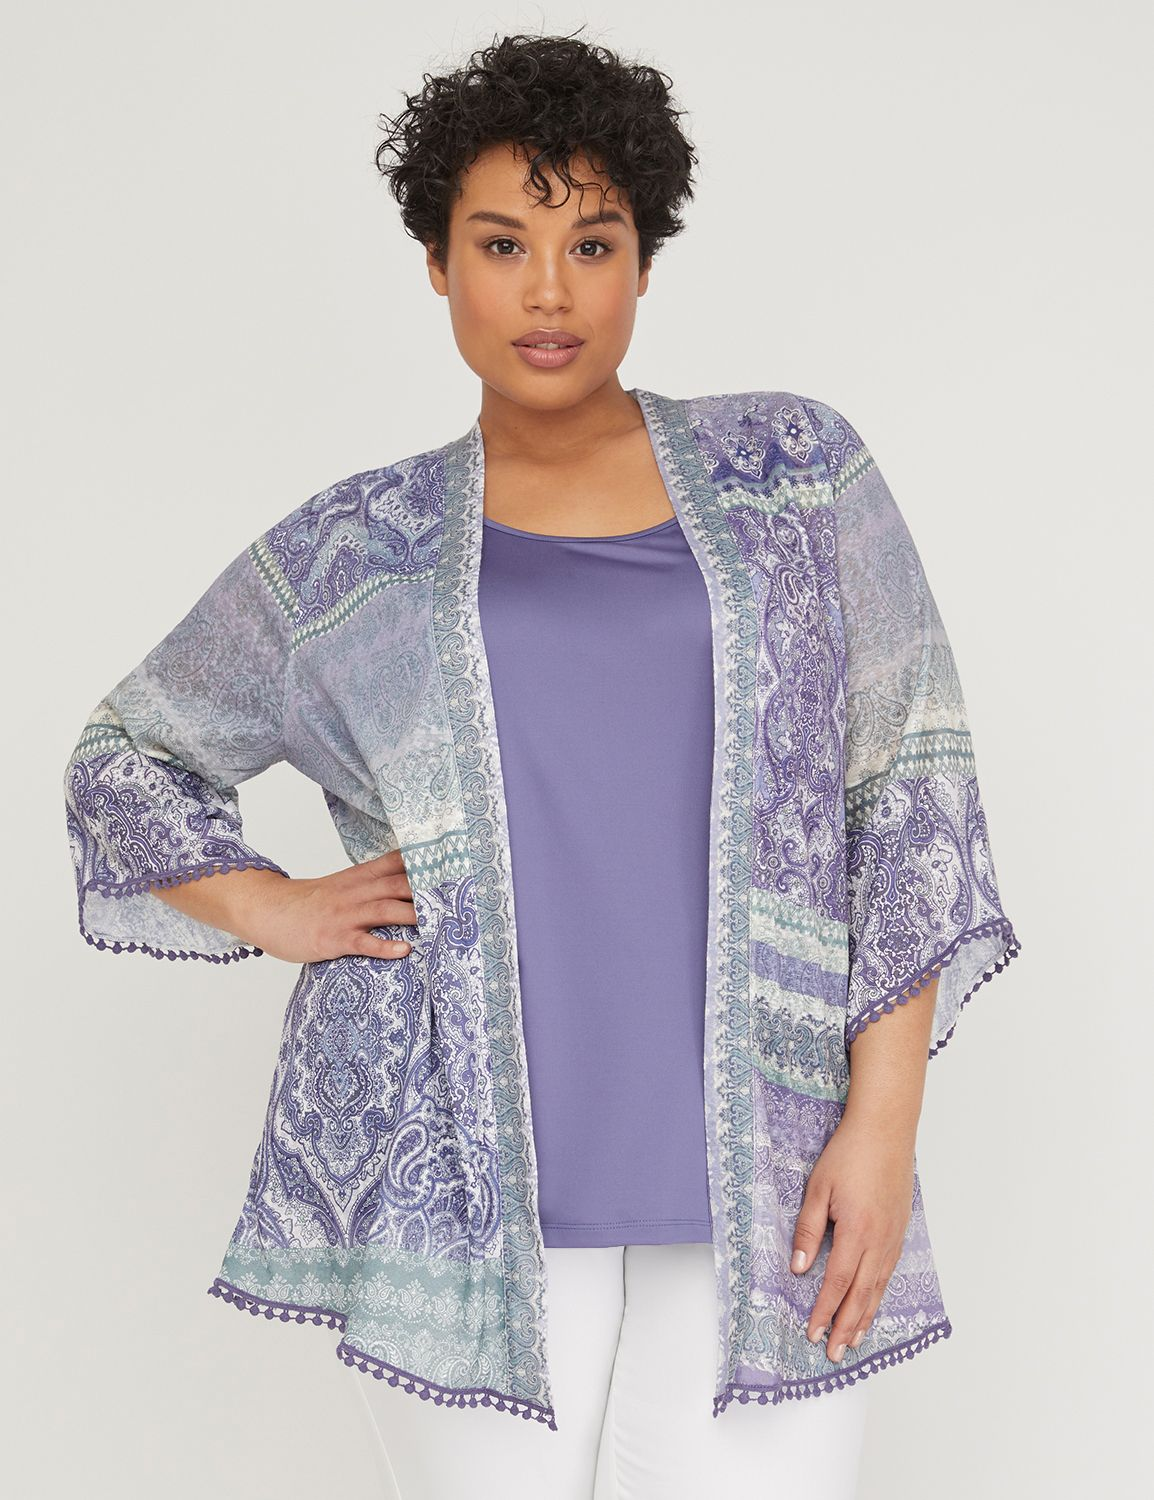 Lavender Paisley Cardigan with Embroidered Trim 300115503